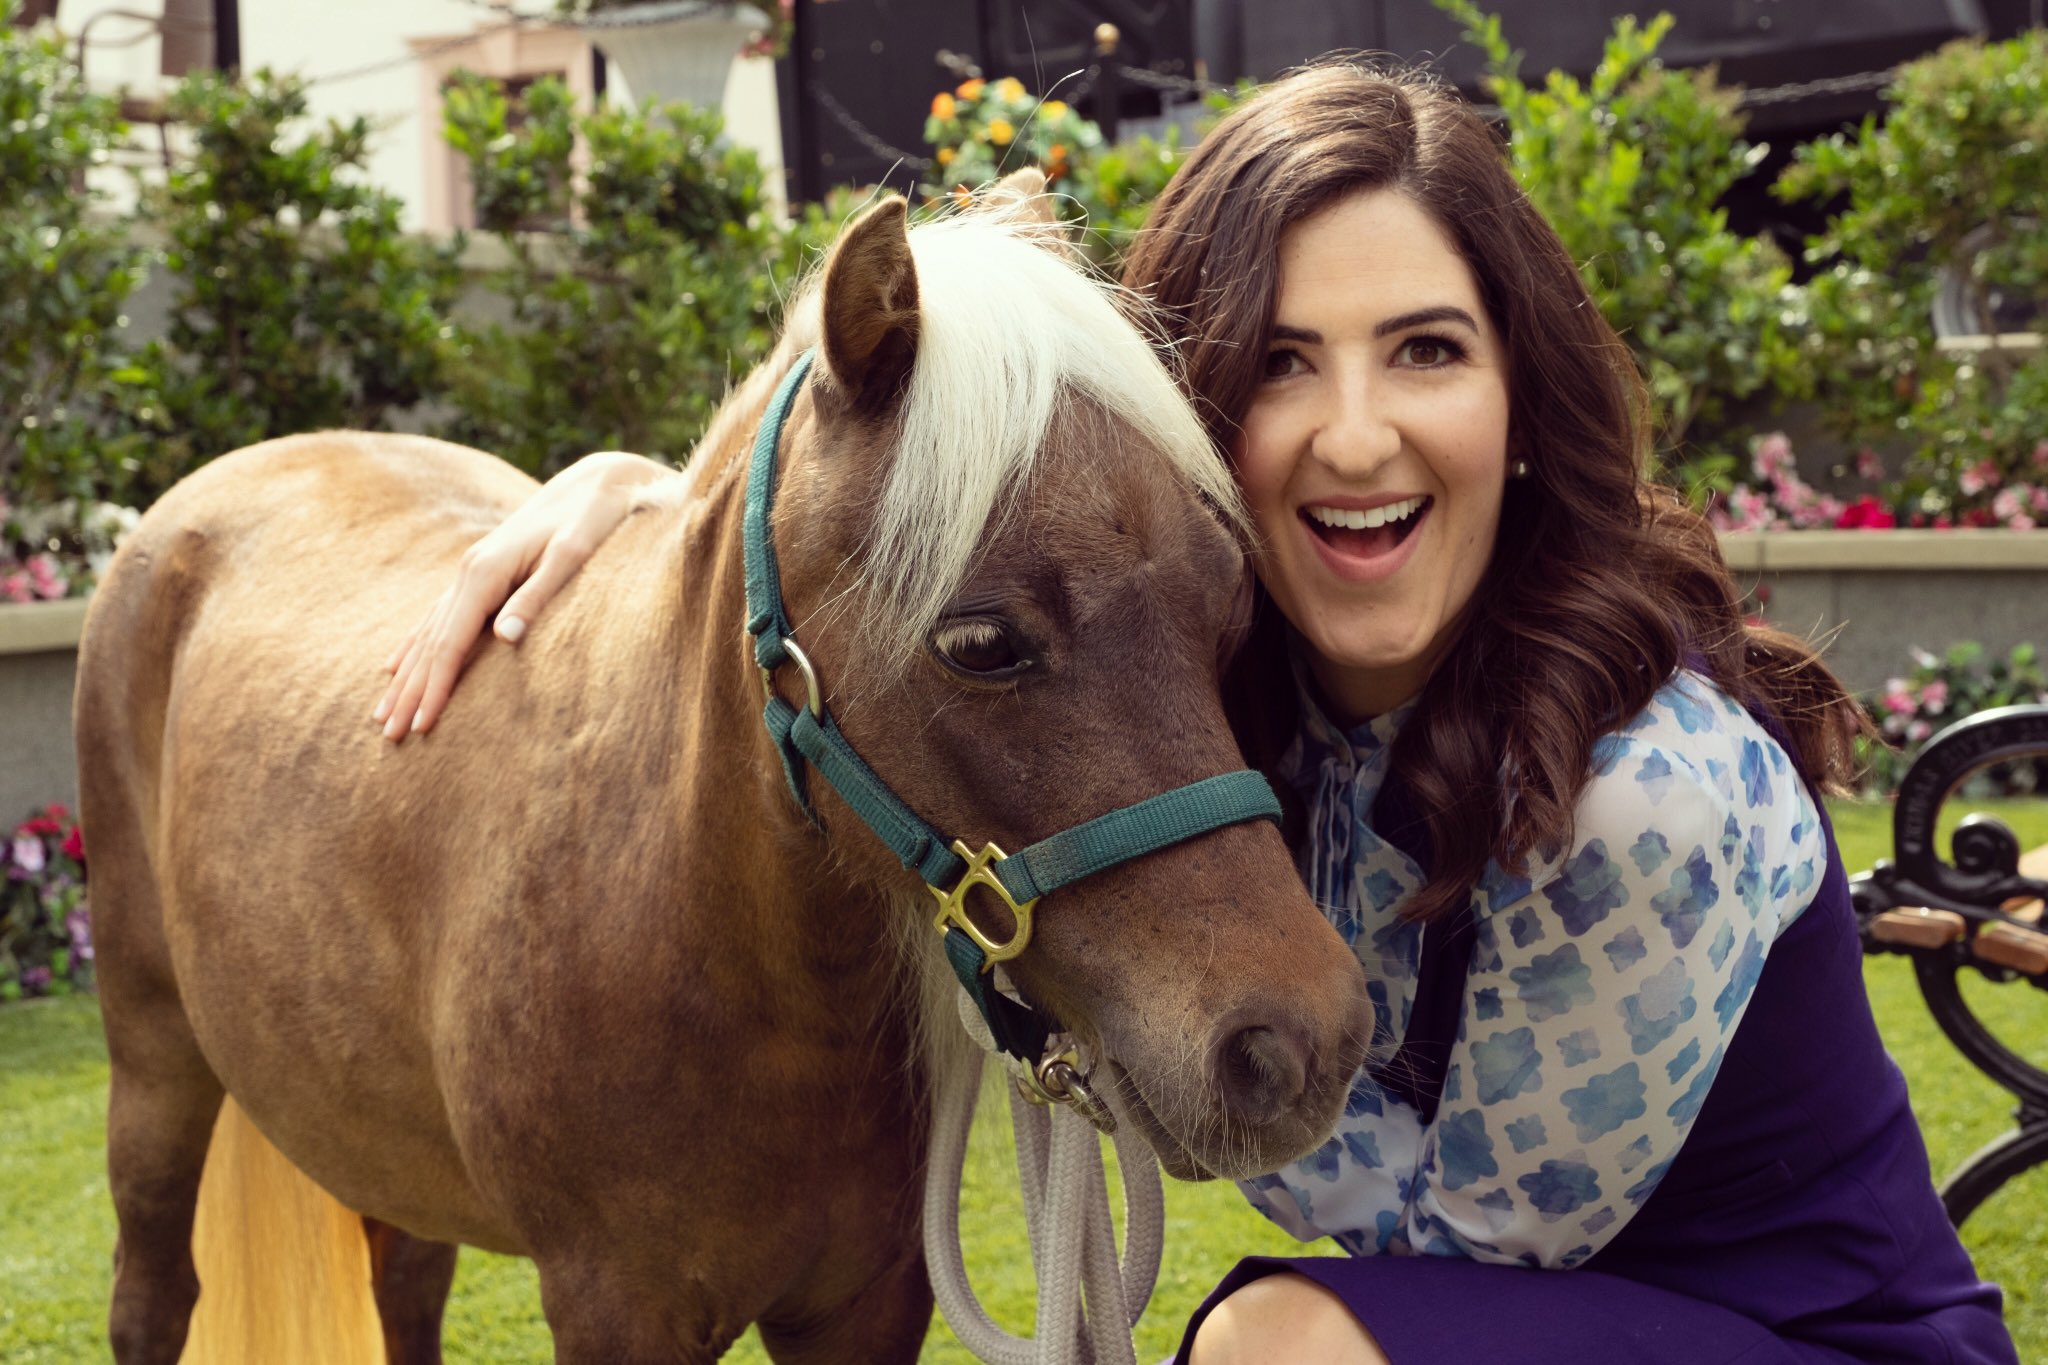 D'Arcy Carden on Twitter